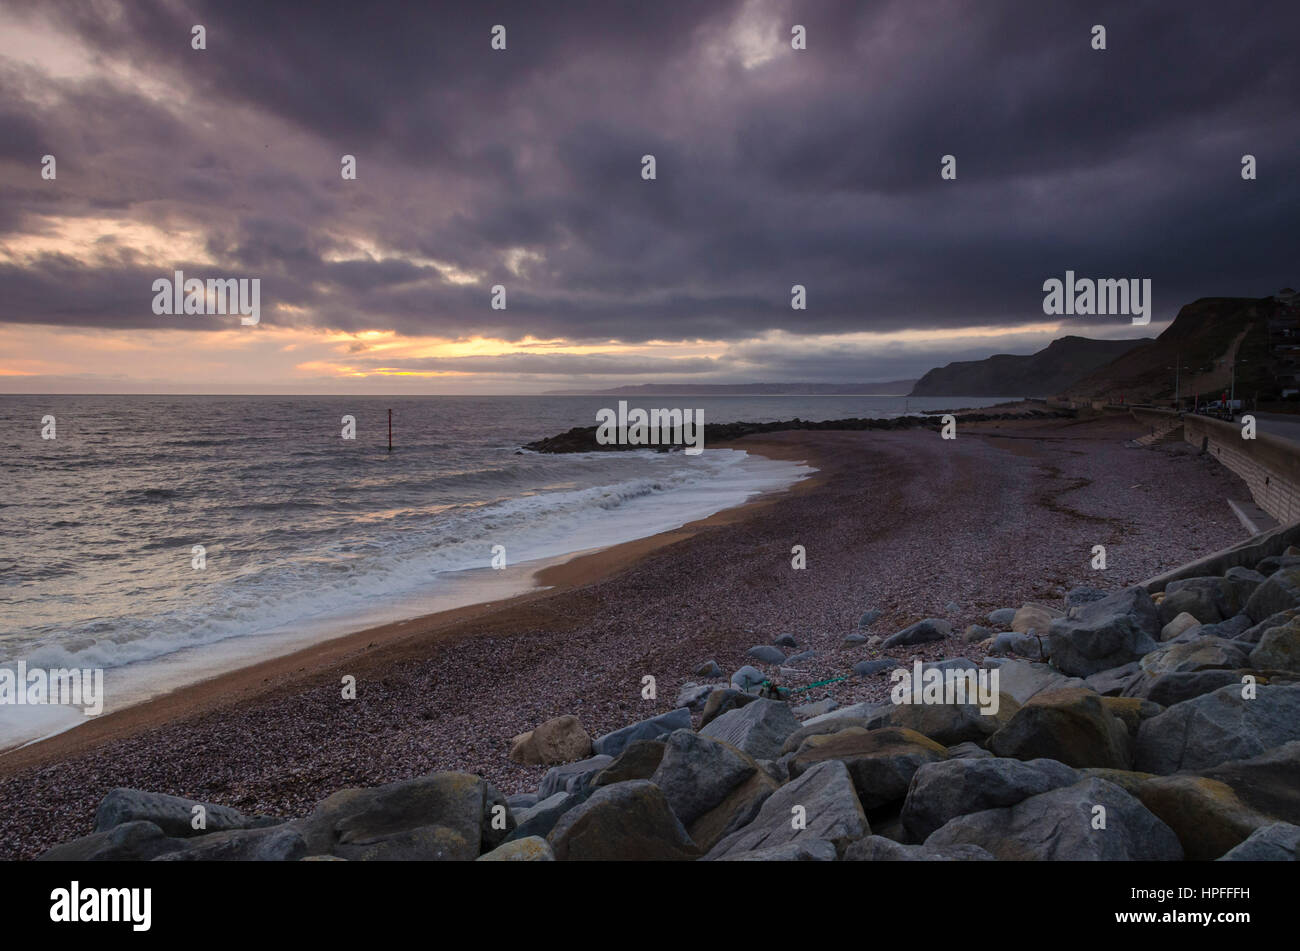 West Bay, Dorset, UK. 21st Feb, 2017. UK Weather. A stormy looking sky above West Bay in Dorset at sunset after - Stock Image